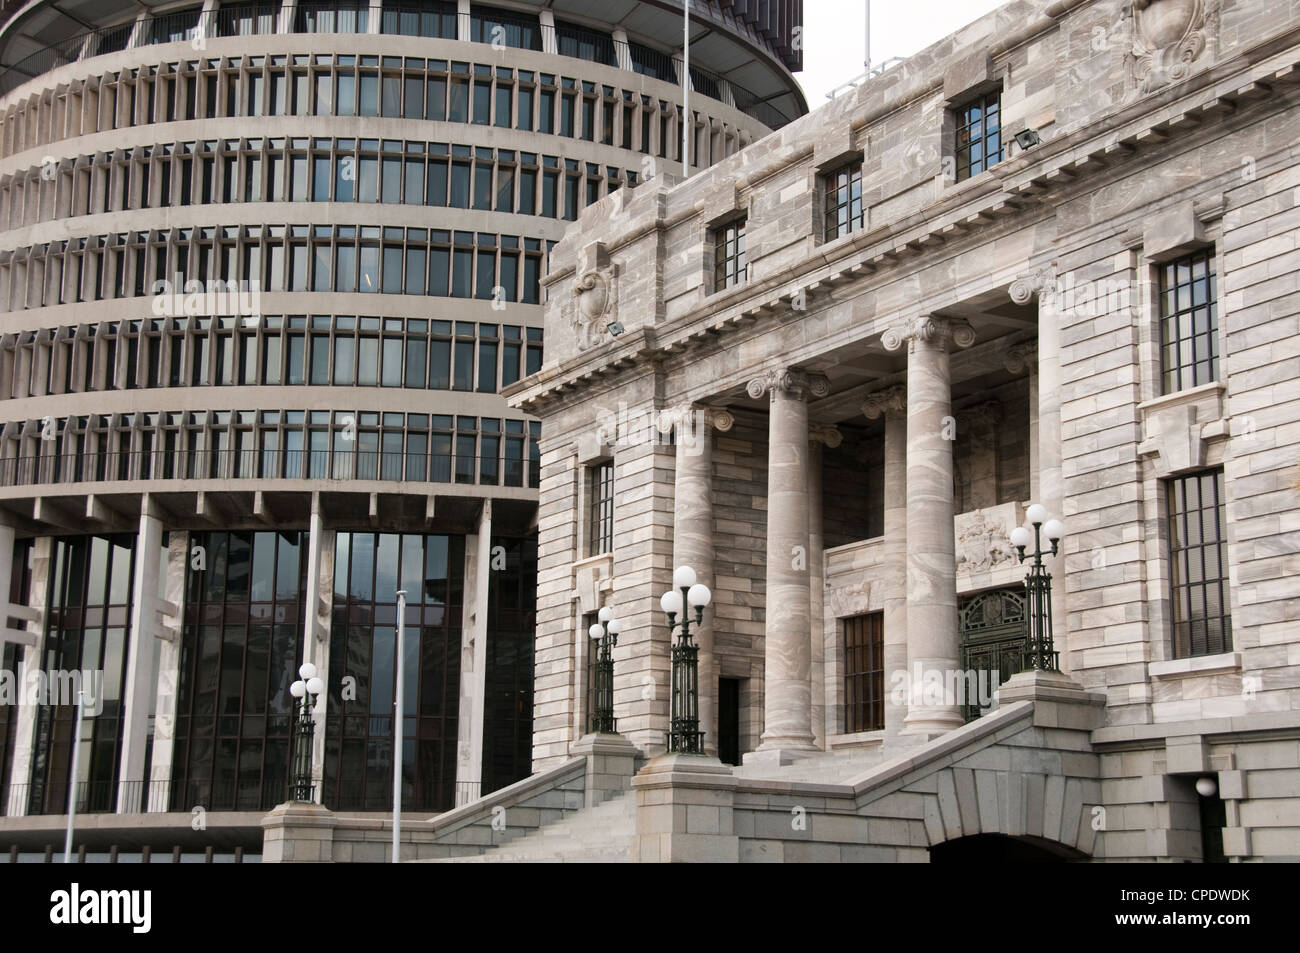 New Zealand, North Island, Wellington, Parliament Building and Beehive. - Stock Image